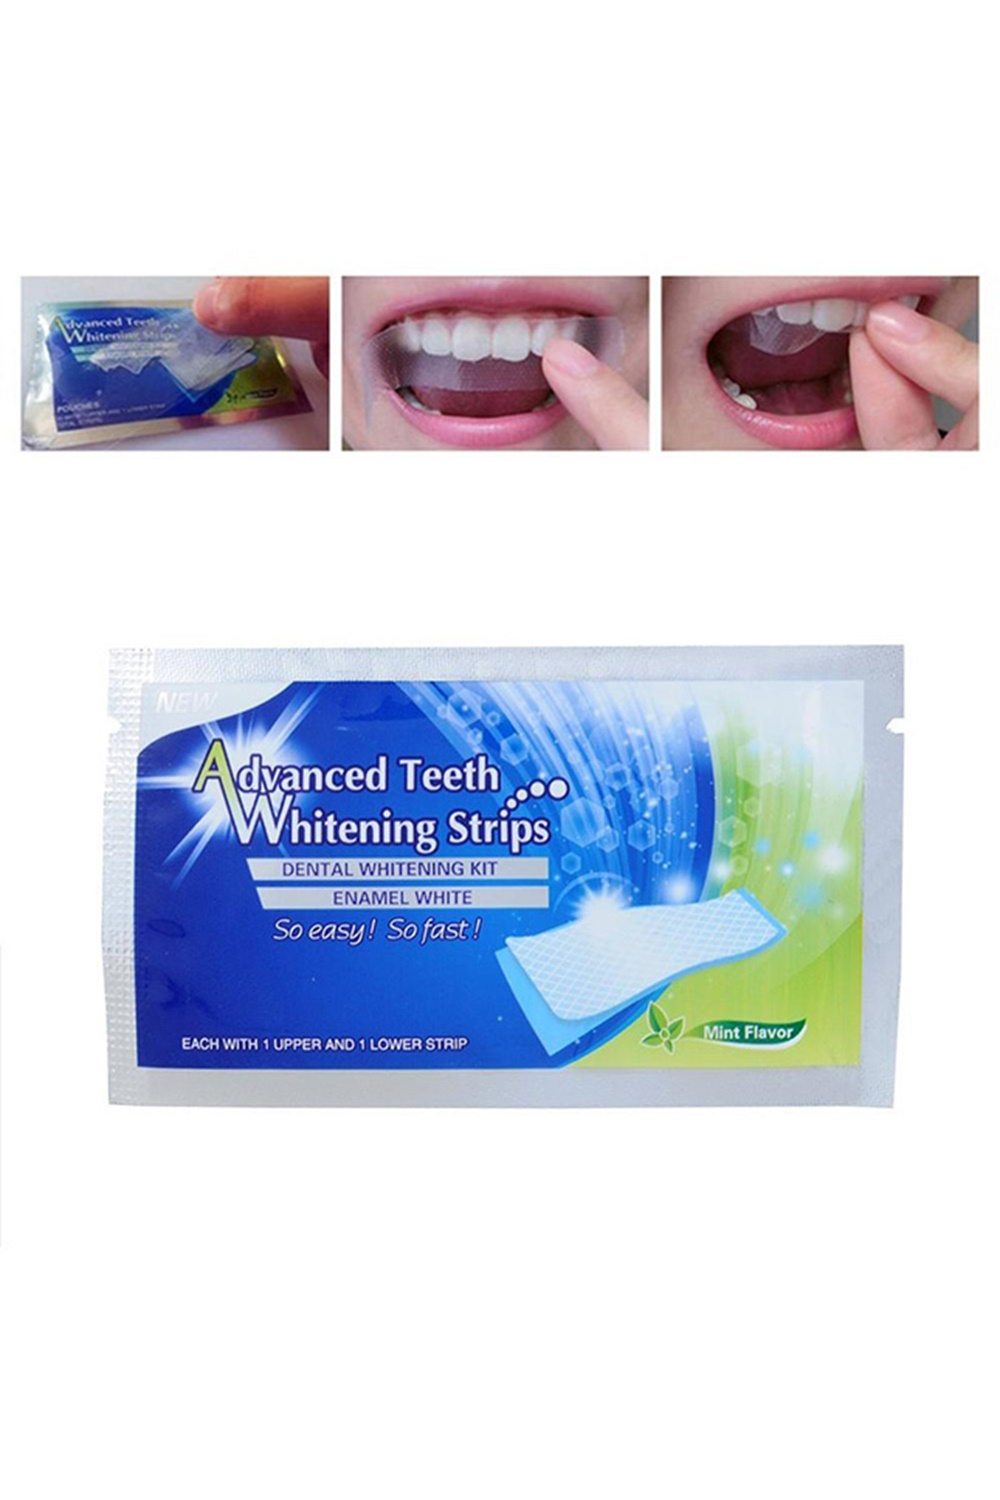 DM Whitening Strips